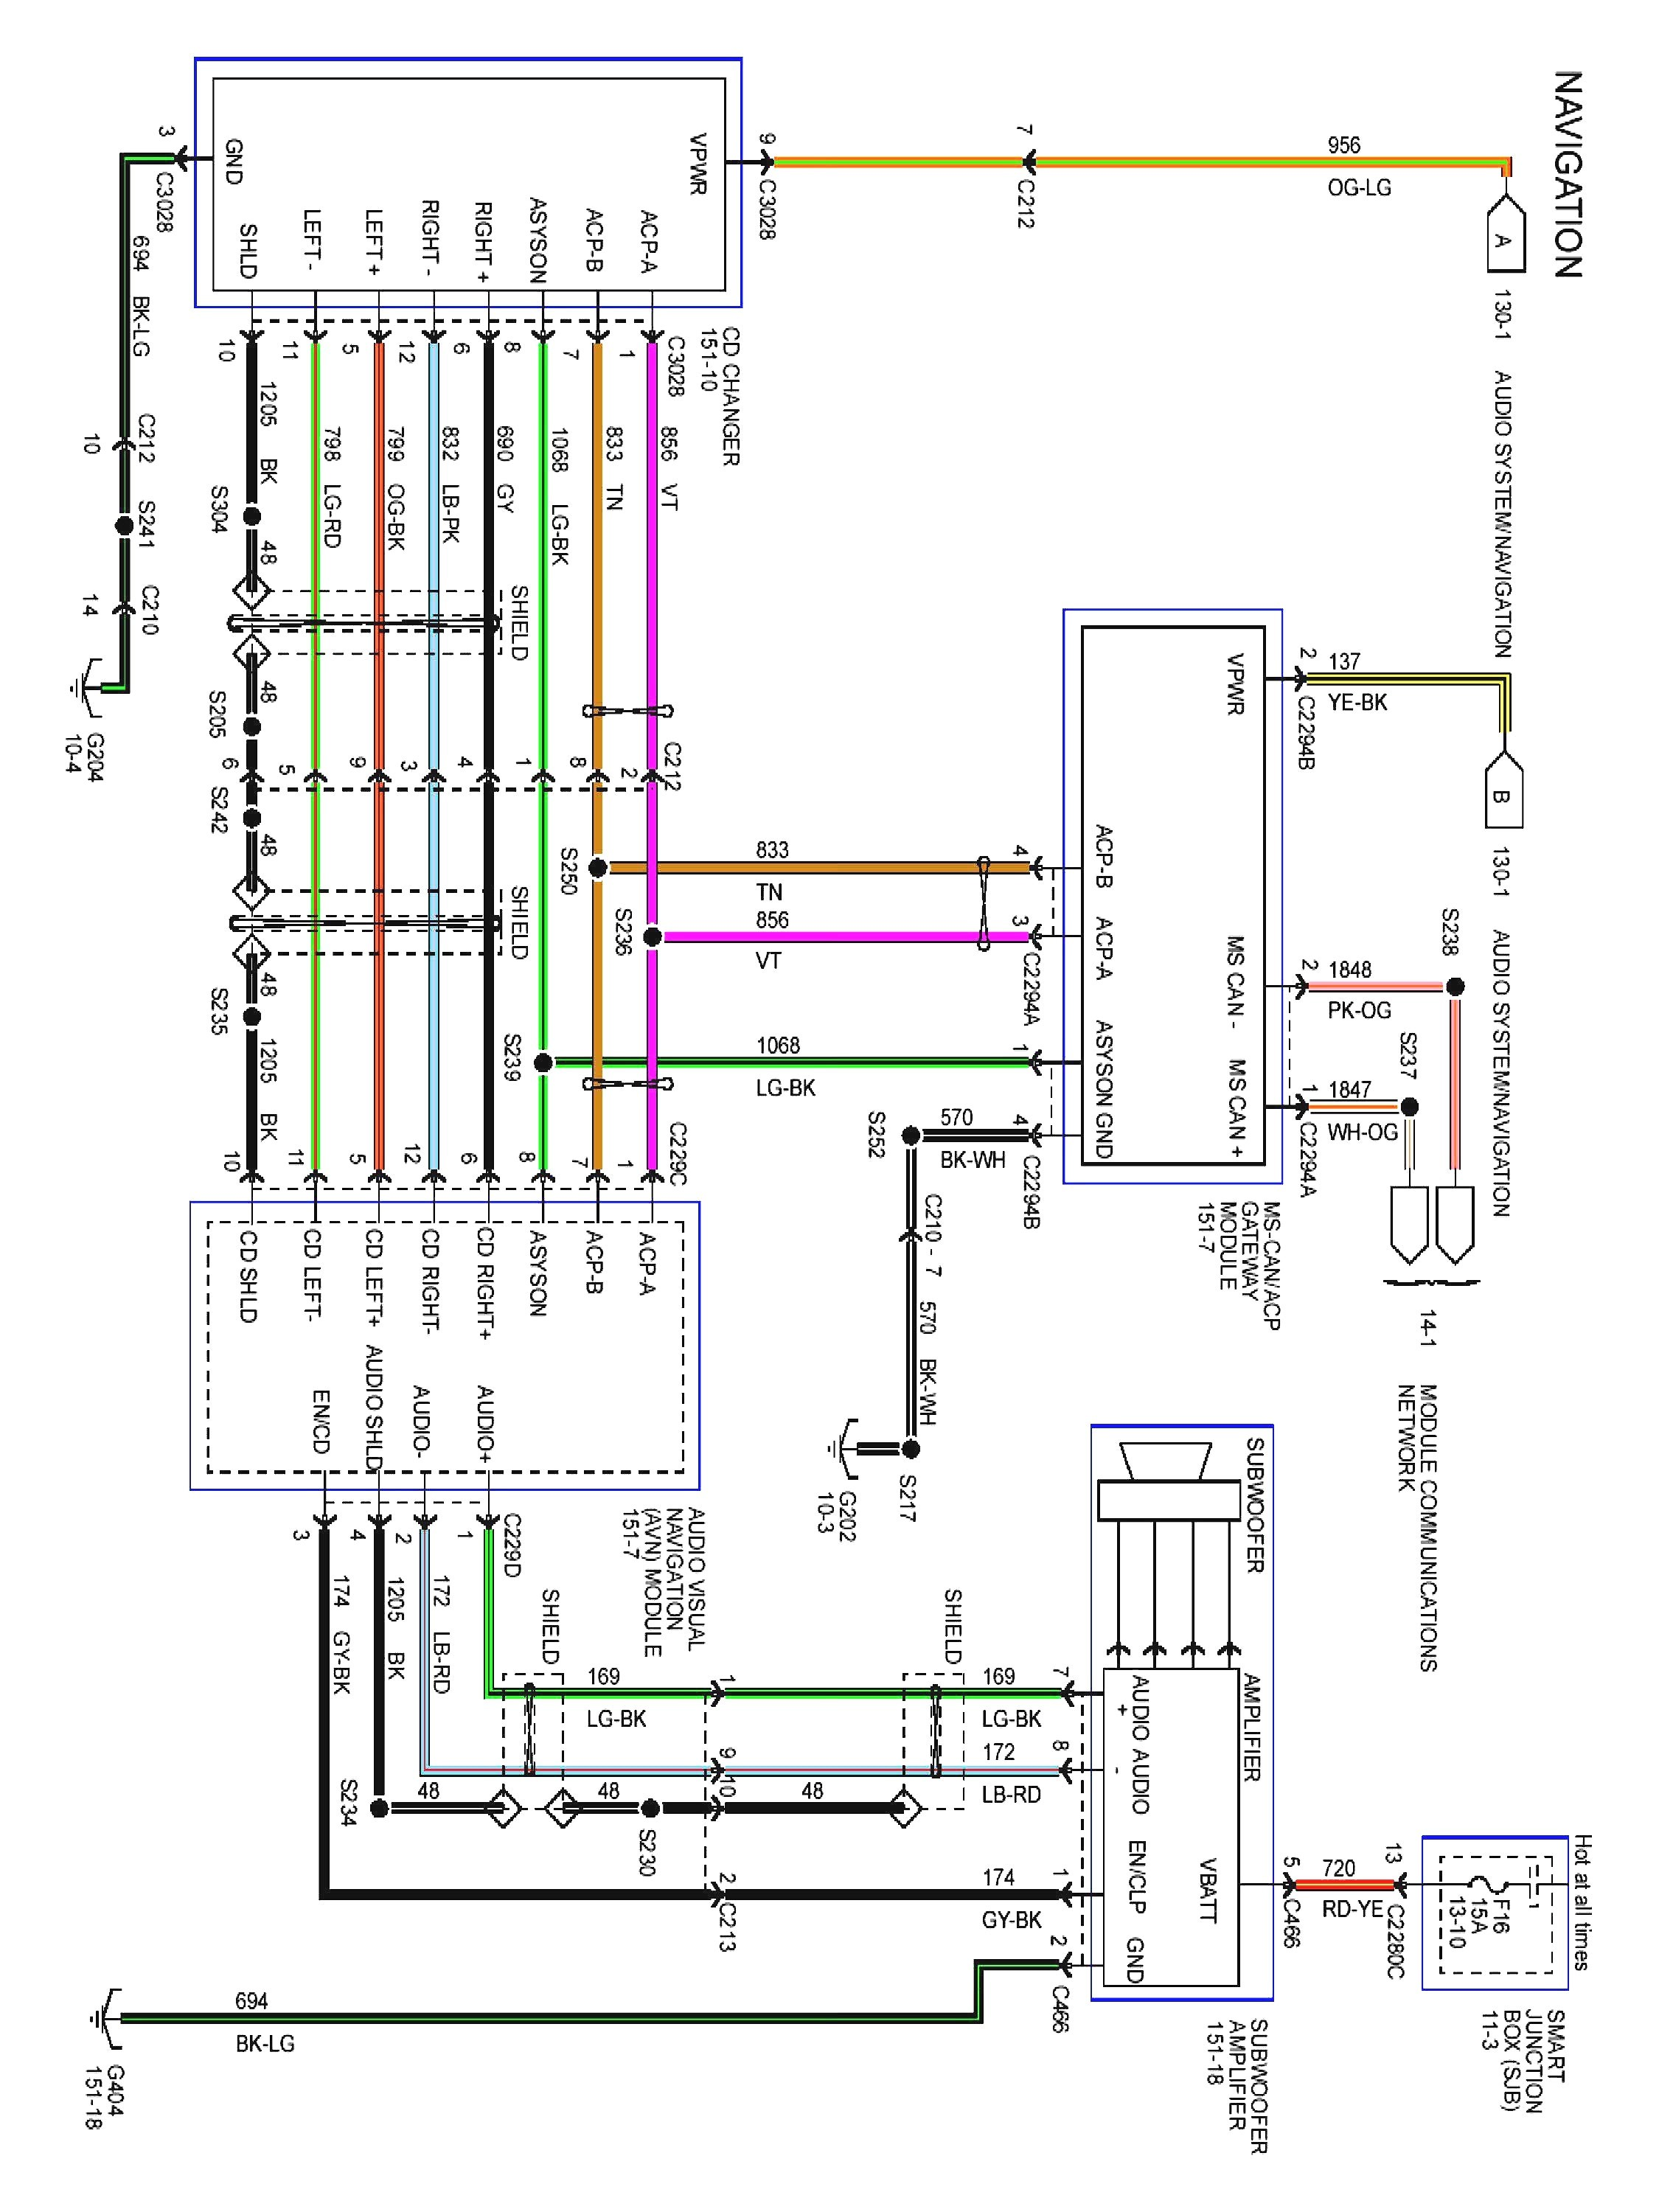 2008 ford Escape Engine Diagram 02 Escape Wiring Diagram ford Radio Image Beautiful 2004 Throughout Of 2008 ford Escape Engine Diagram